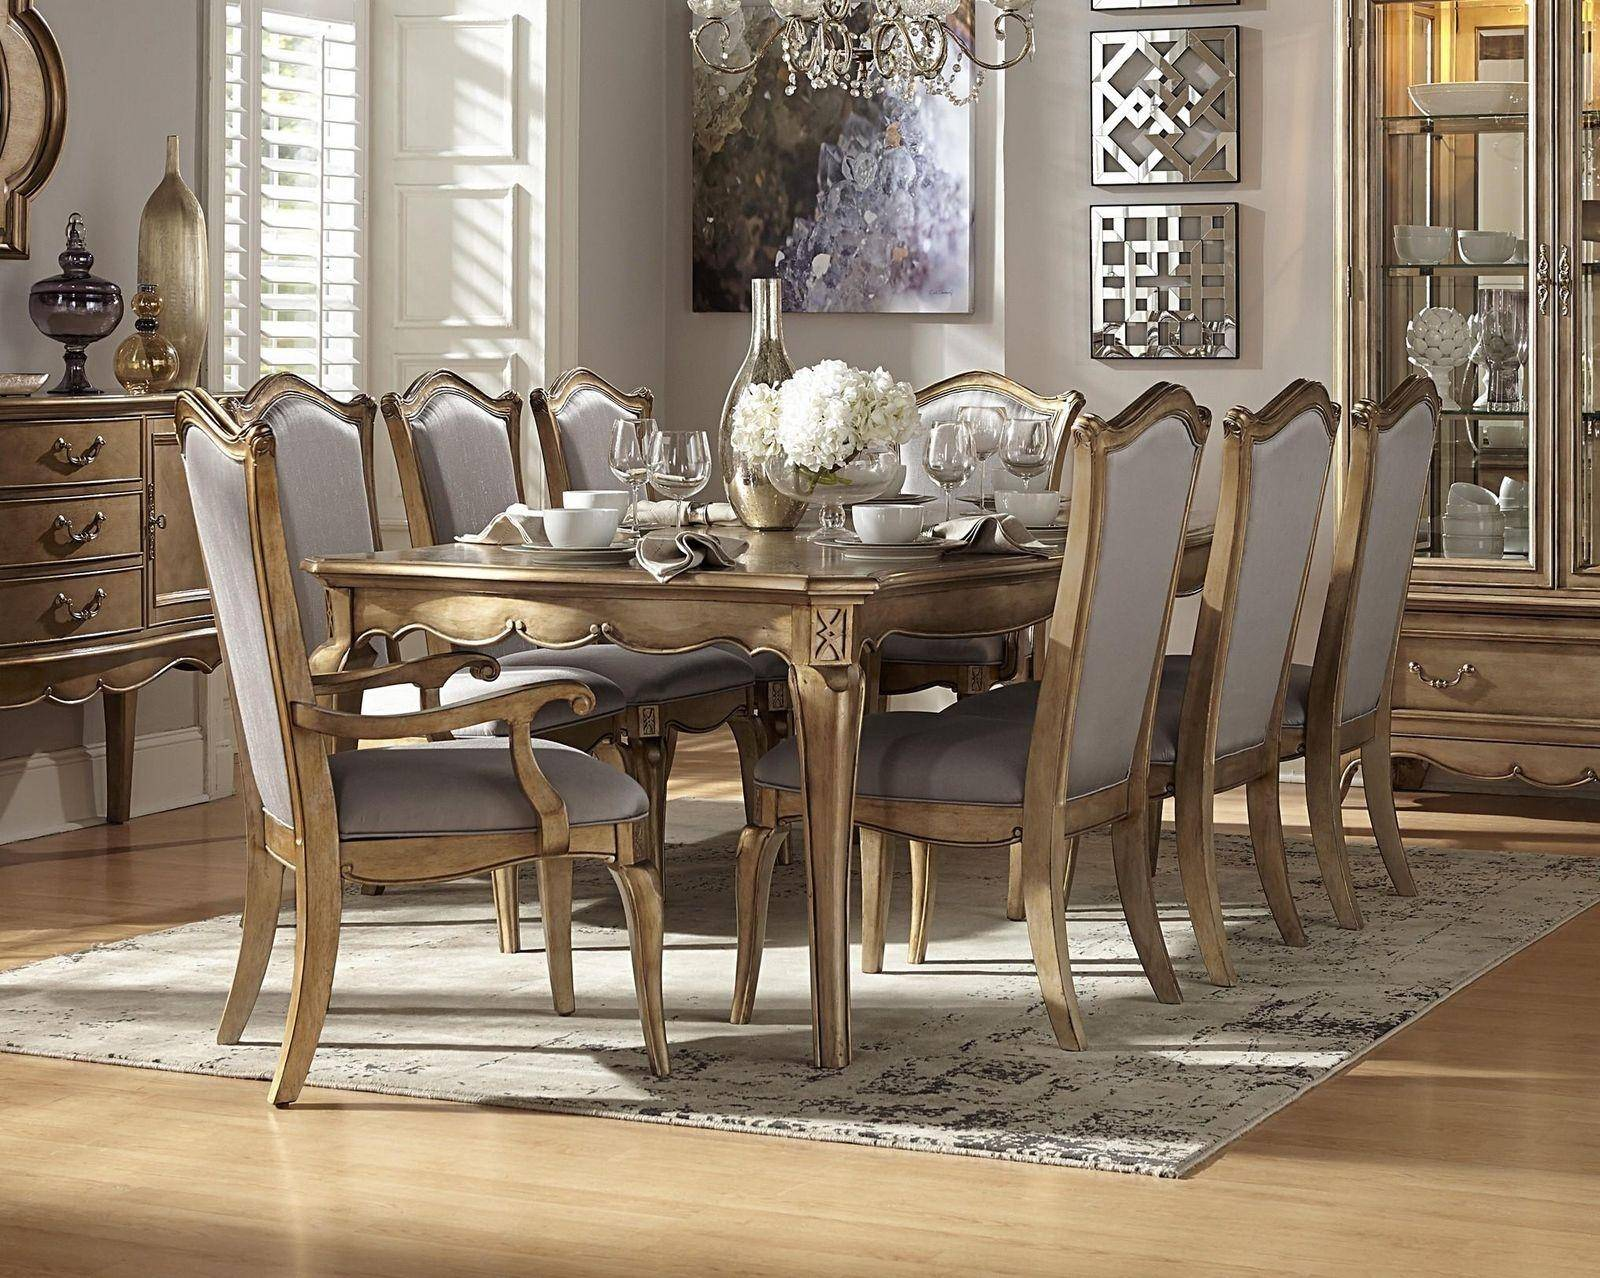 Homelegance 1828 92 Chambord Champagne Gold Wood Leaf Dining Table Set 9pсs 1828 92 1828ax2 1828sx6